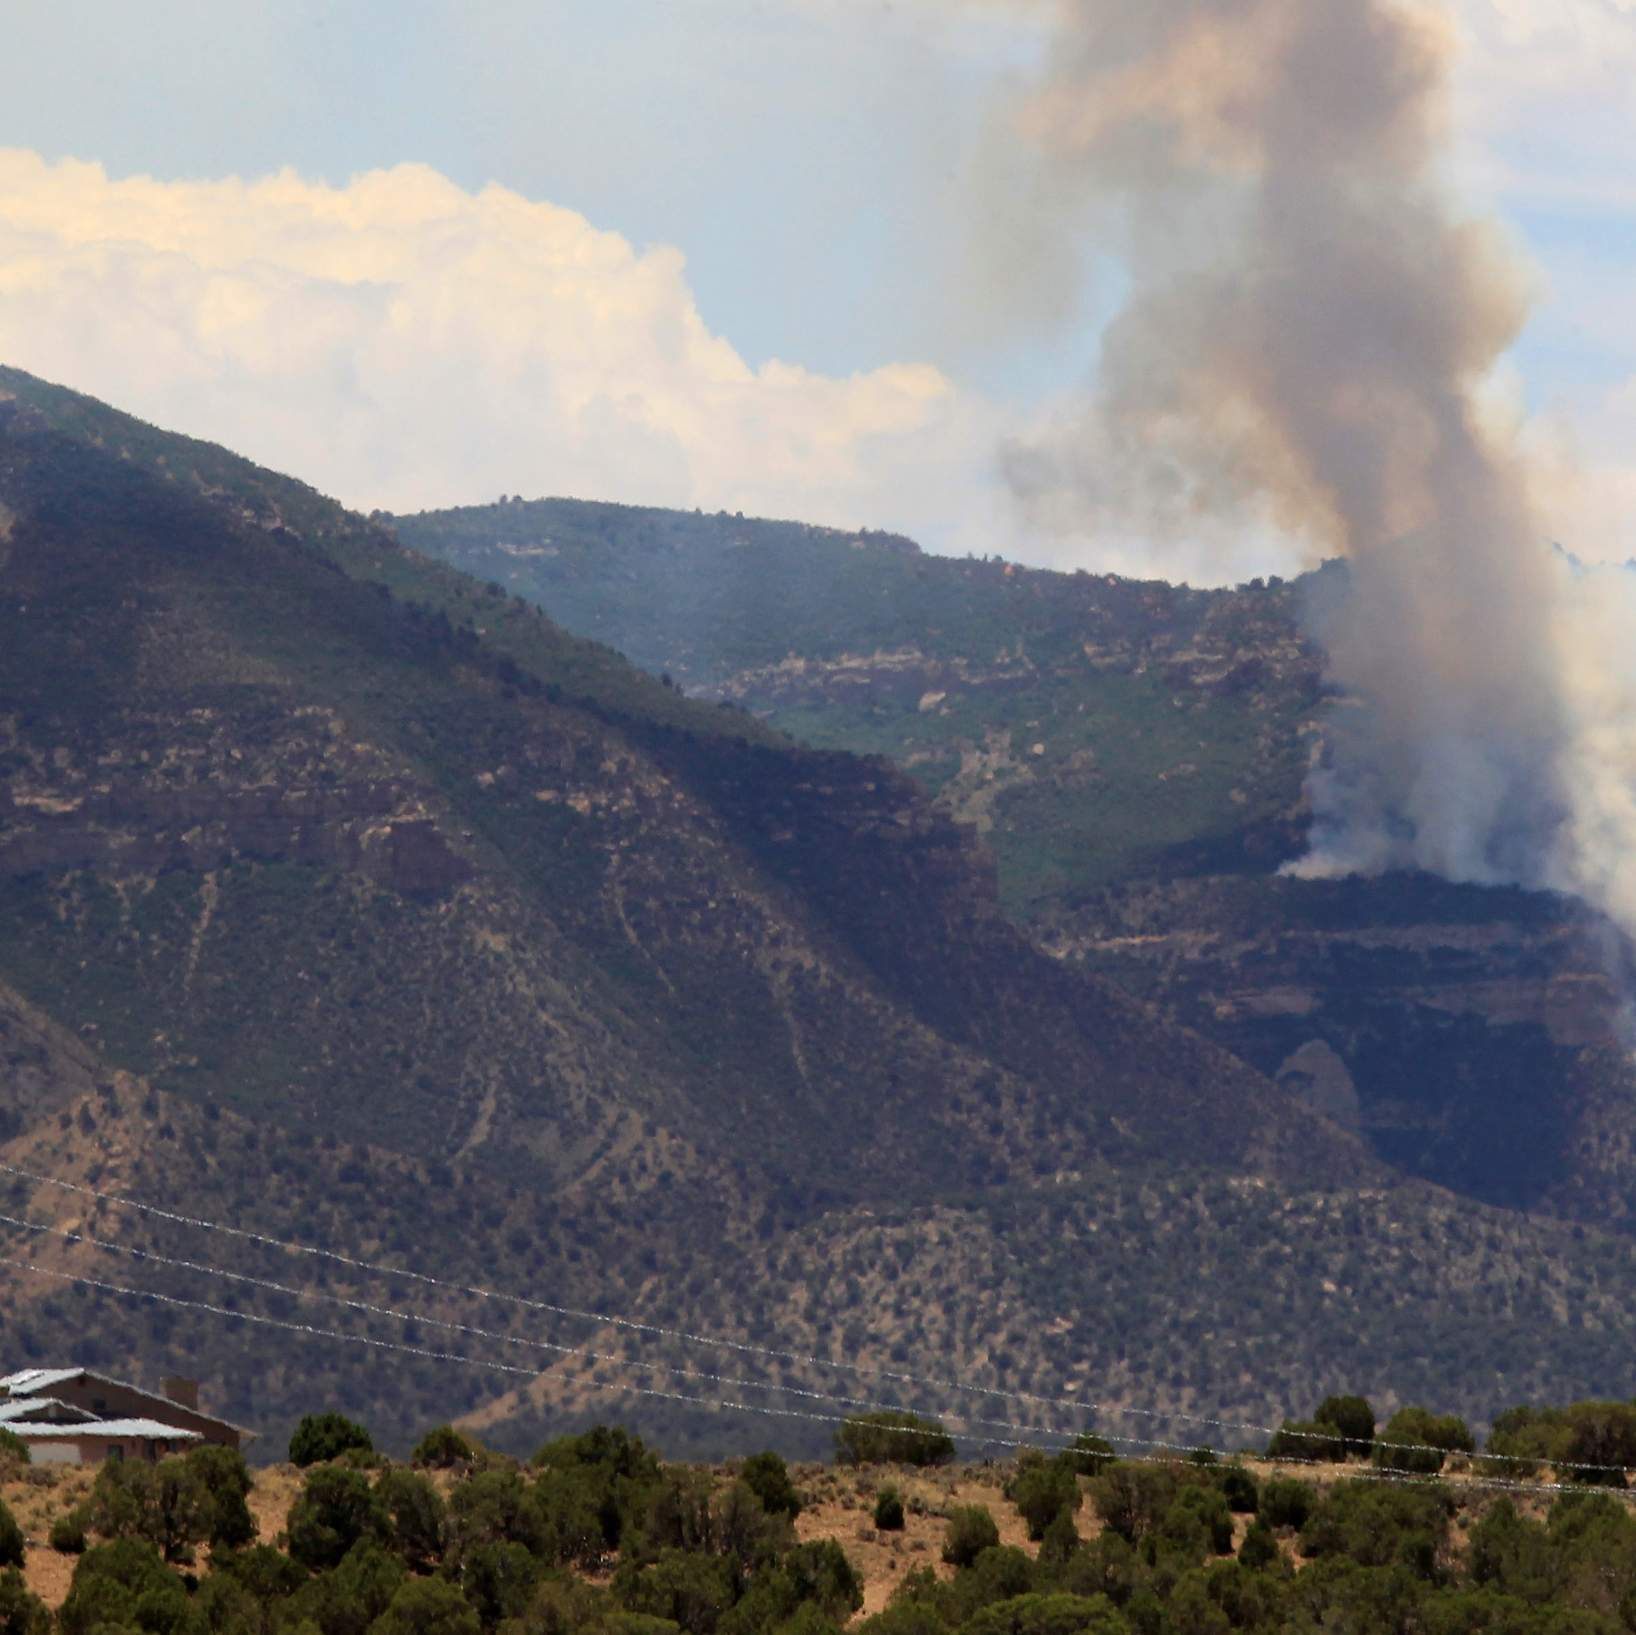 Fire restrictions will take effect at Mesa Verde National Park